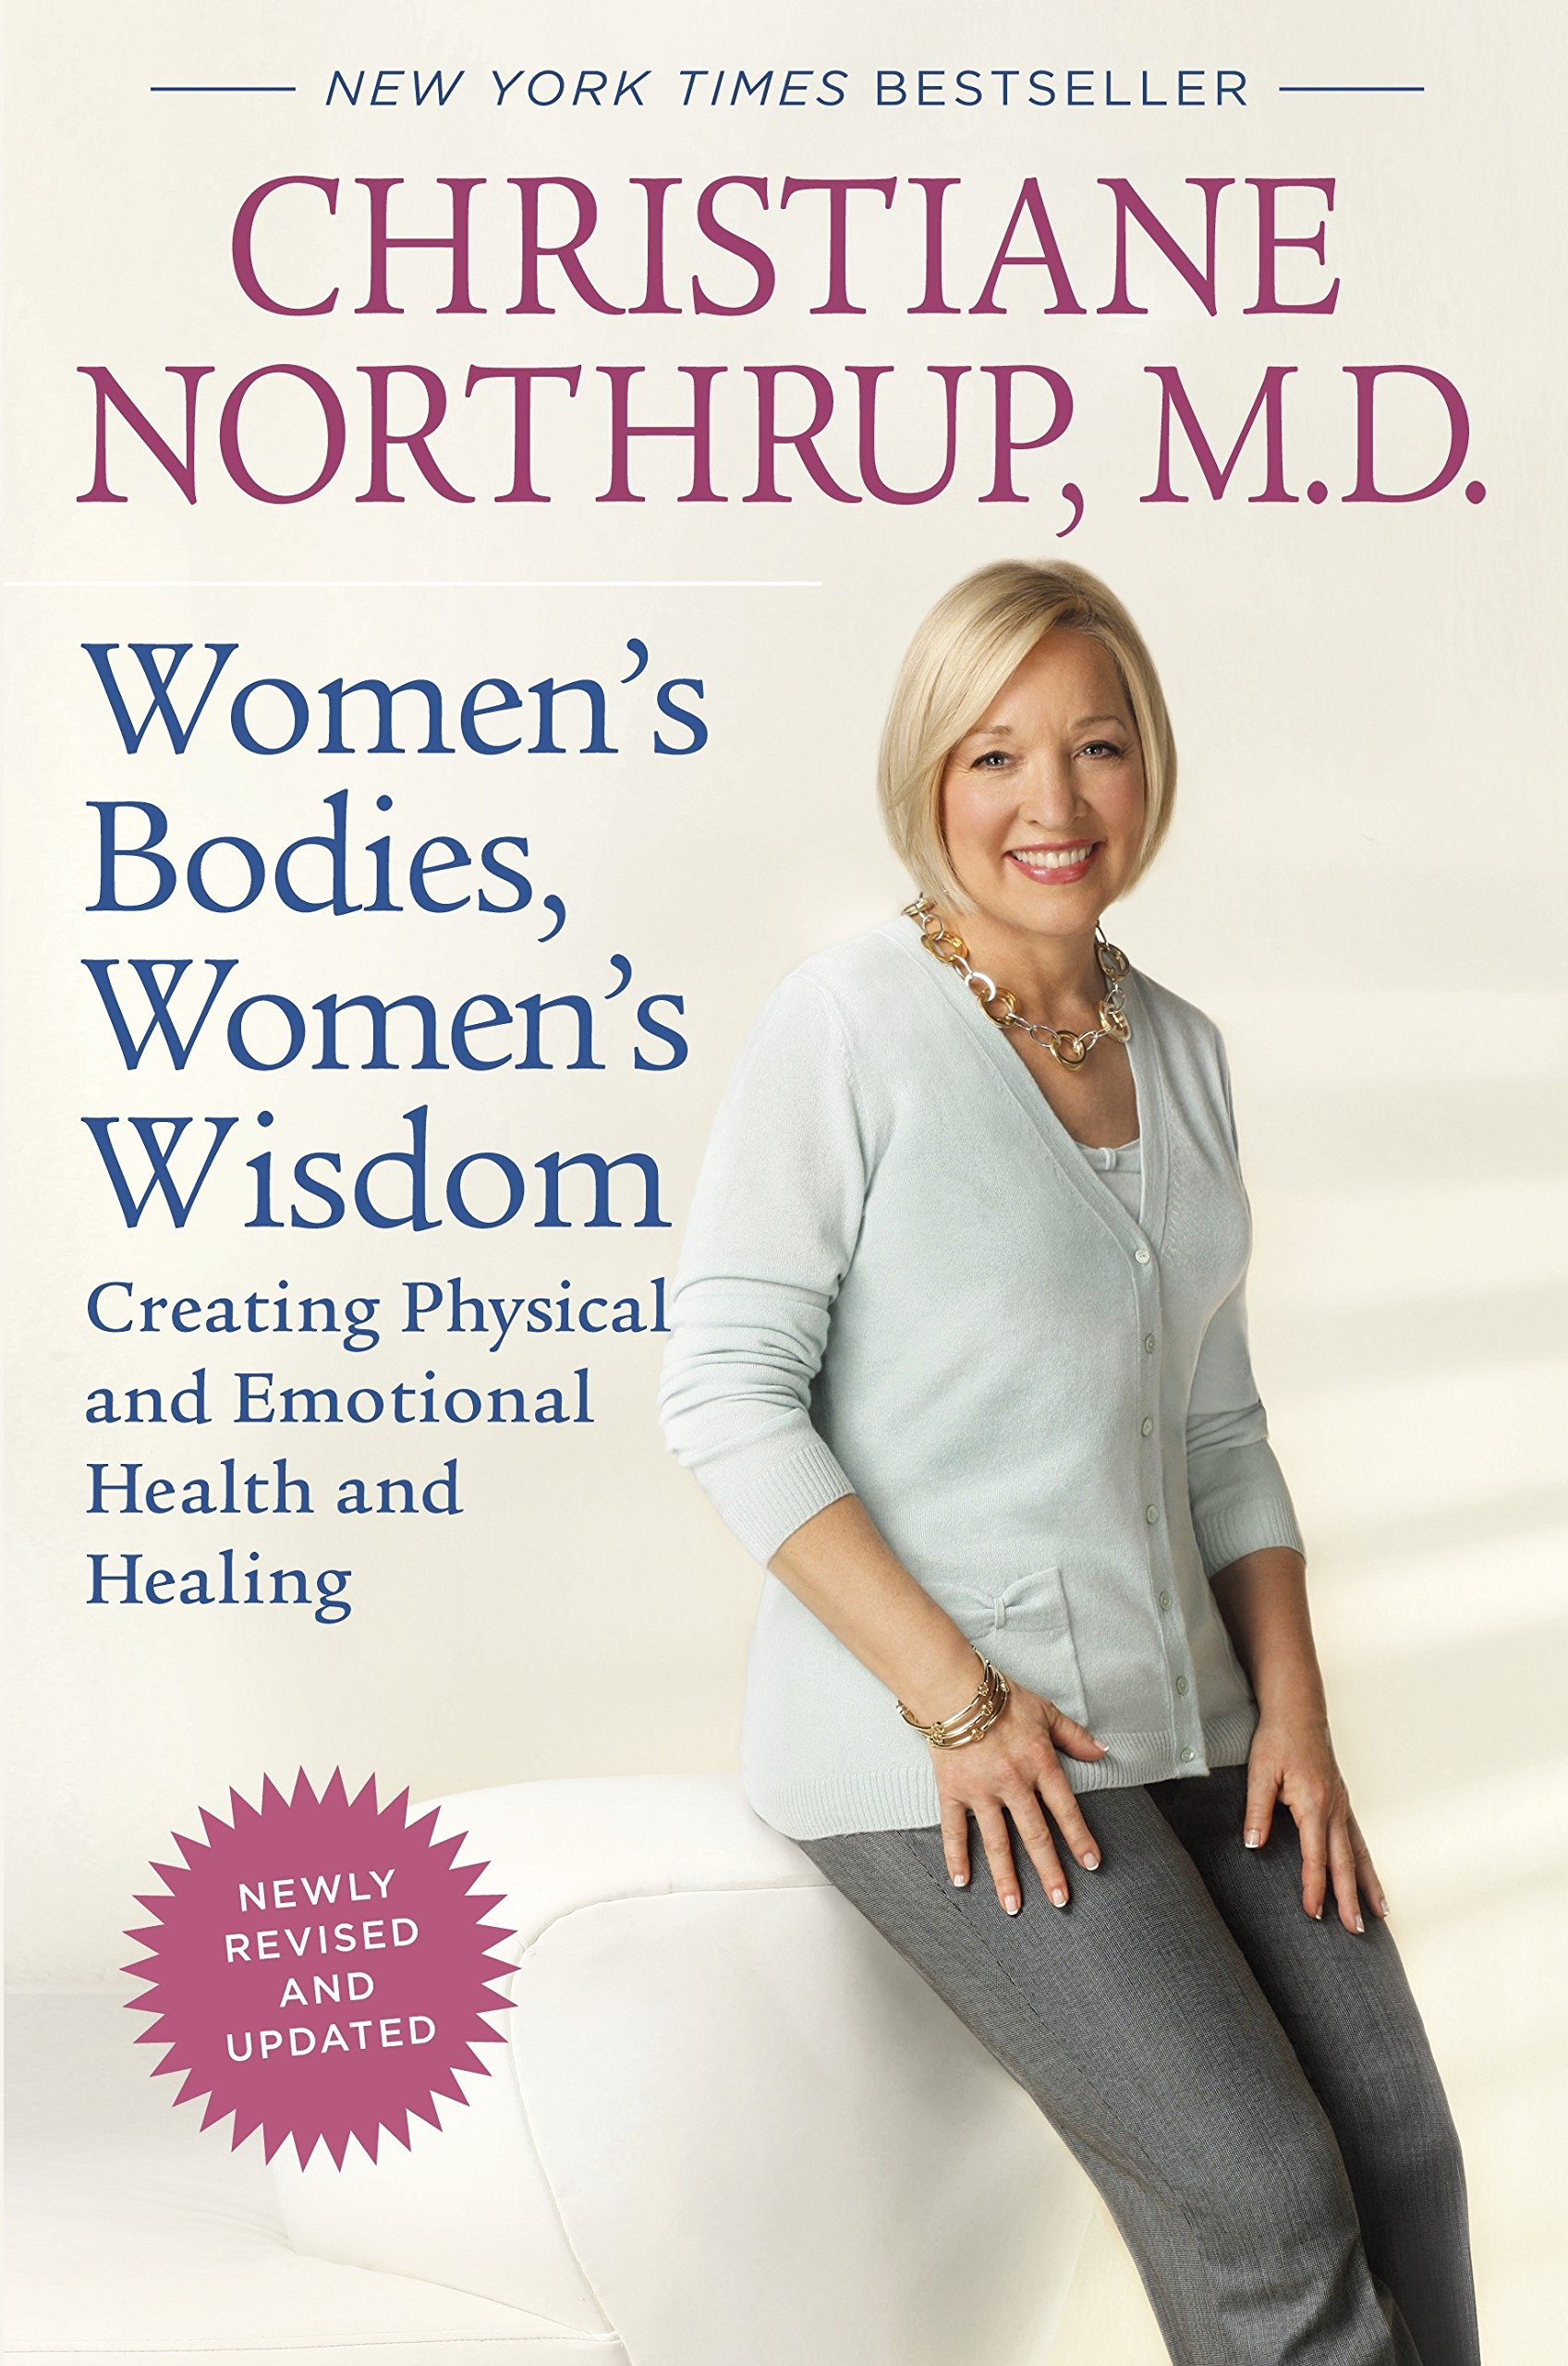 Women's Bodies, Women's Wisdom (Revised Edition): Creating Physical and Emotional Health and Healing